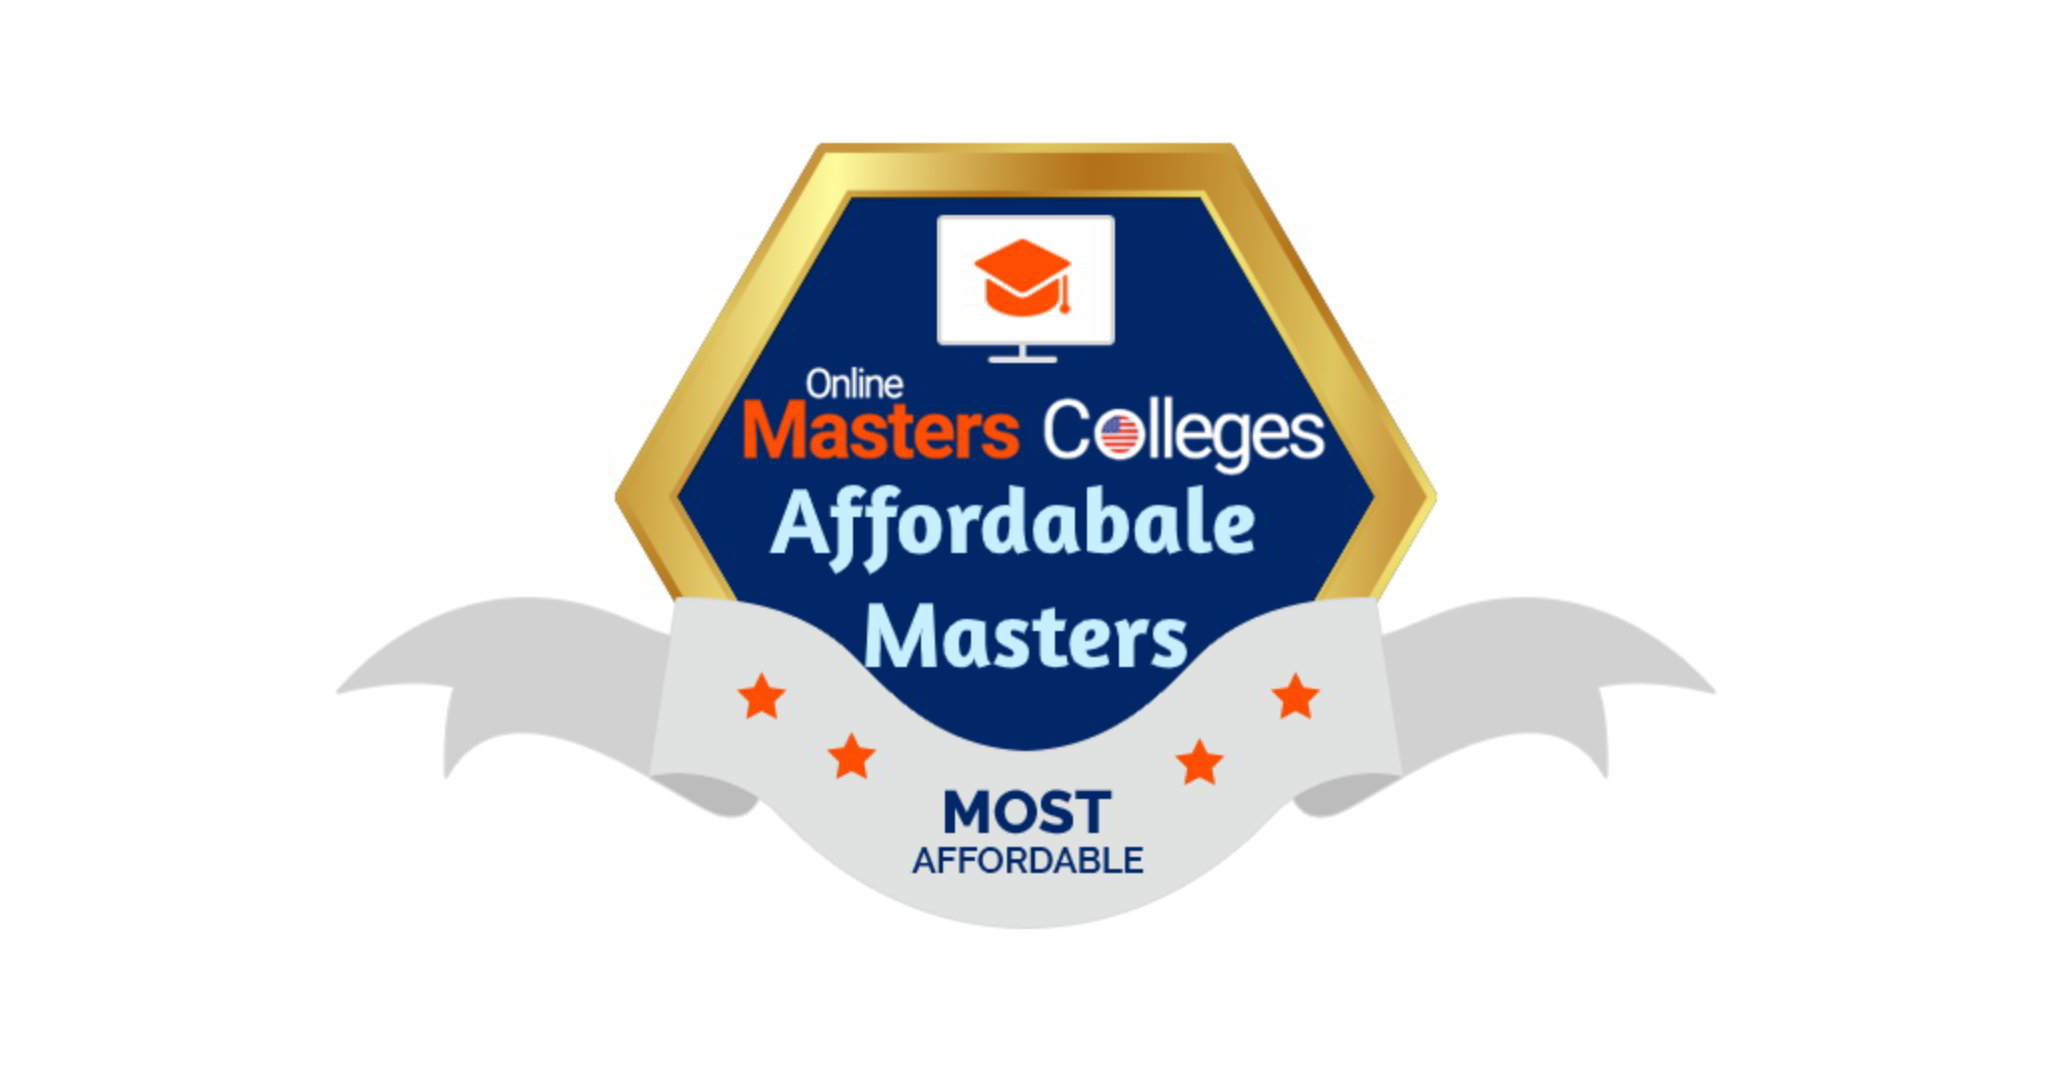 onlinemasterscolleges